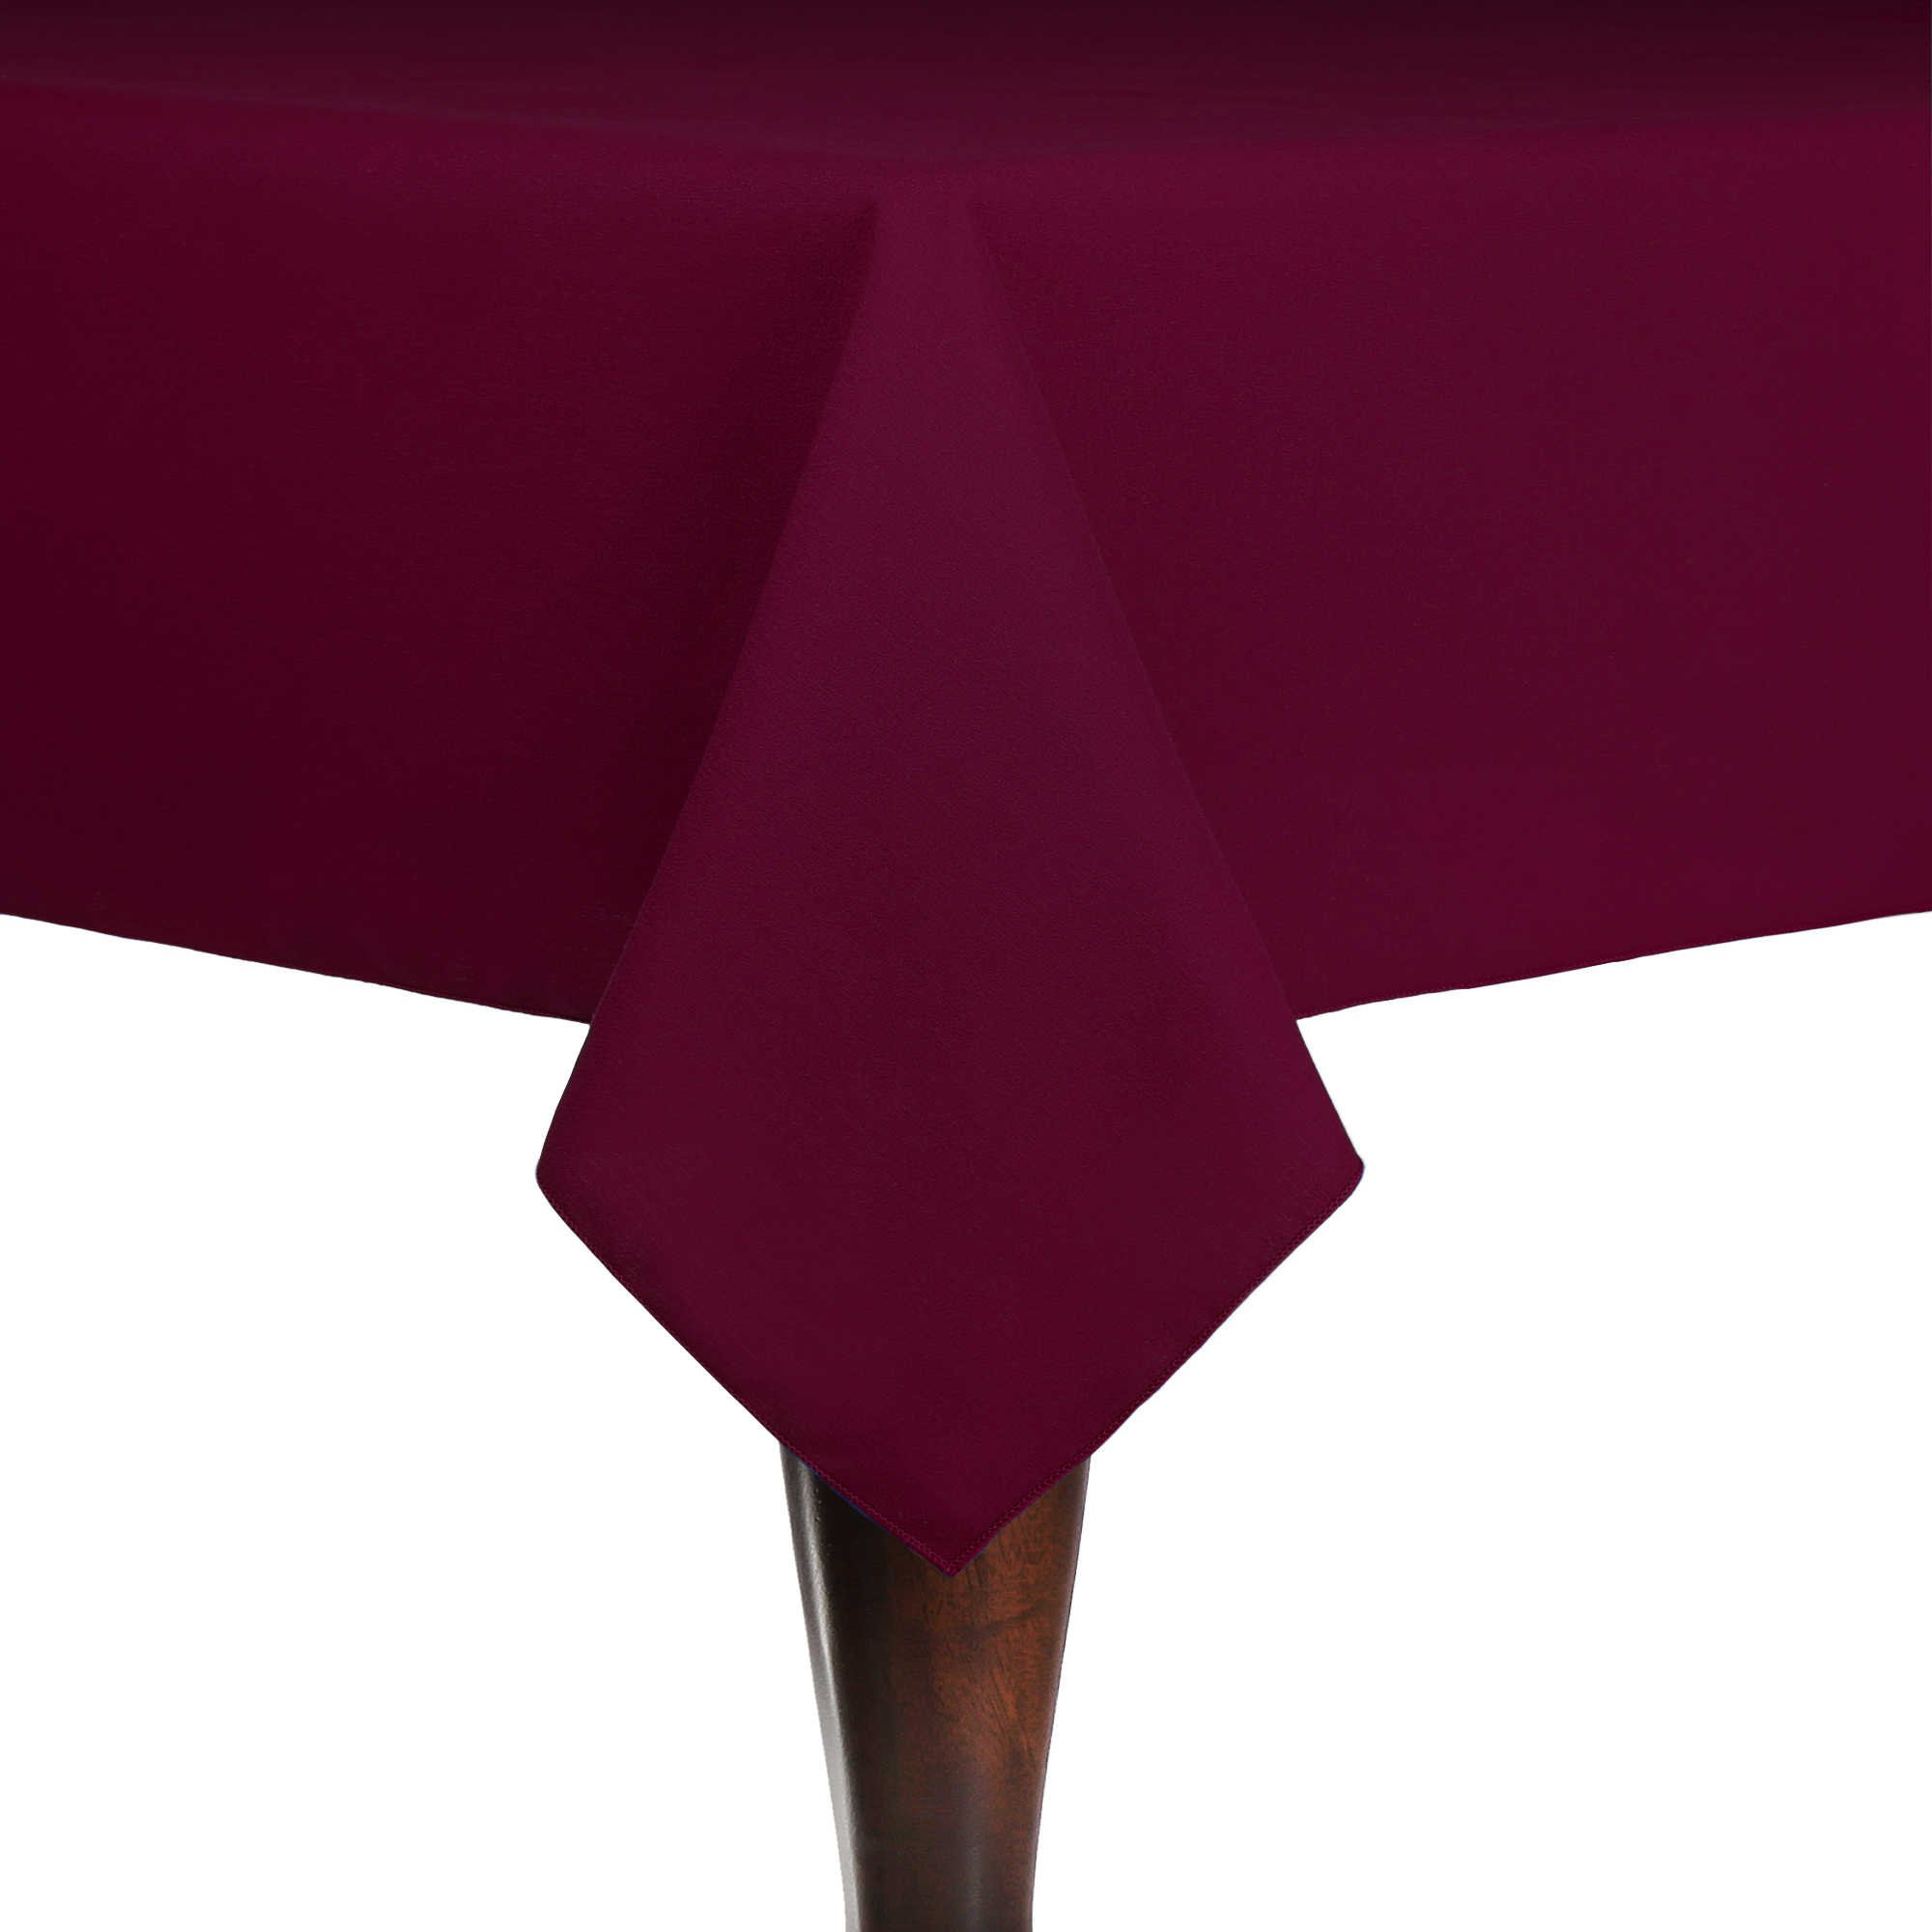 Ultimate Textile (5 Pack) Cotton-feel Spun Polyester 60 x 60-Inch Square Tablecloth - for Wedding and Banquet, Hotel or Home Fine Dining use, Burgundy Dark Red